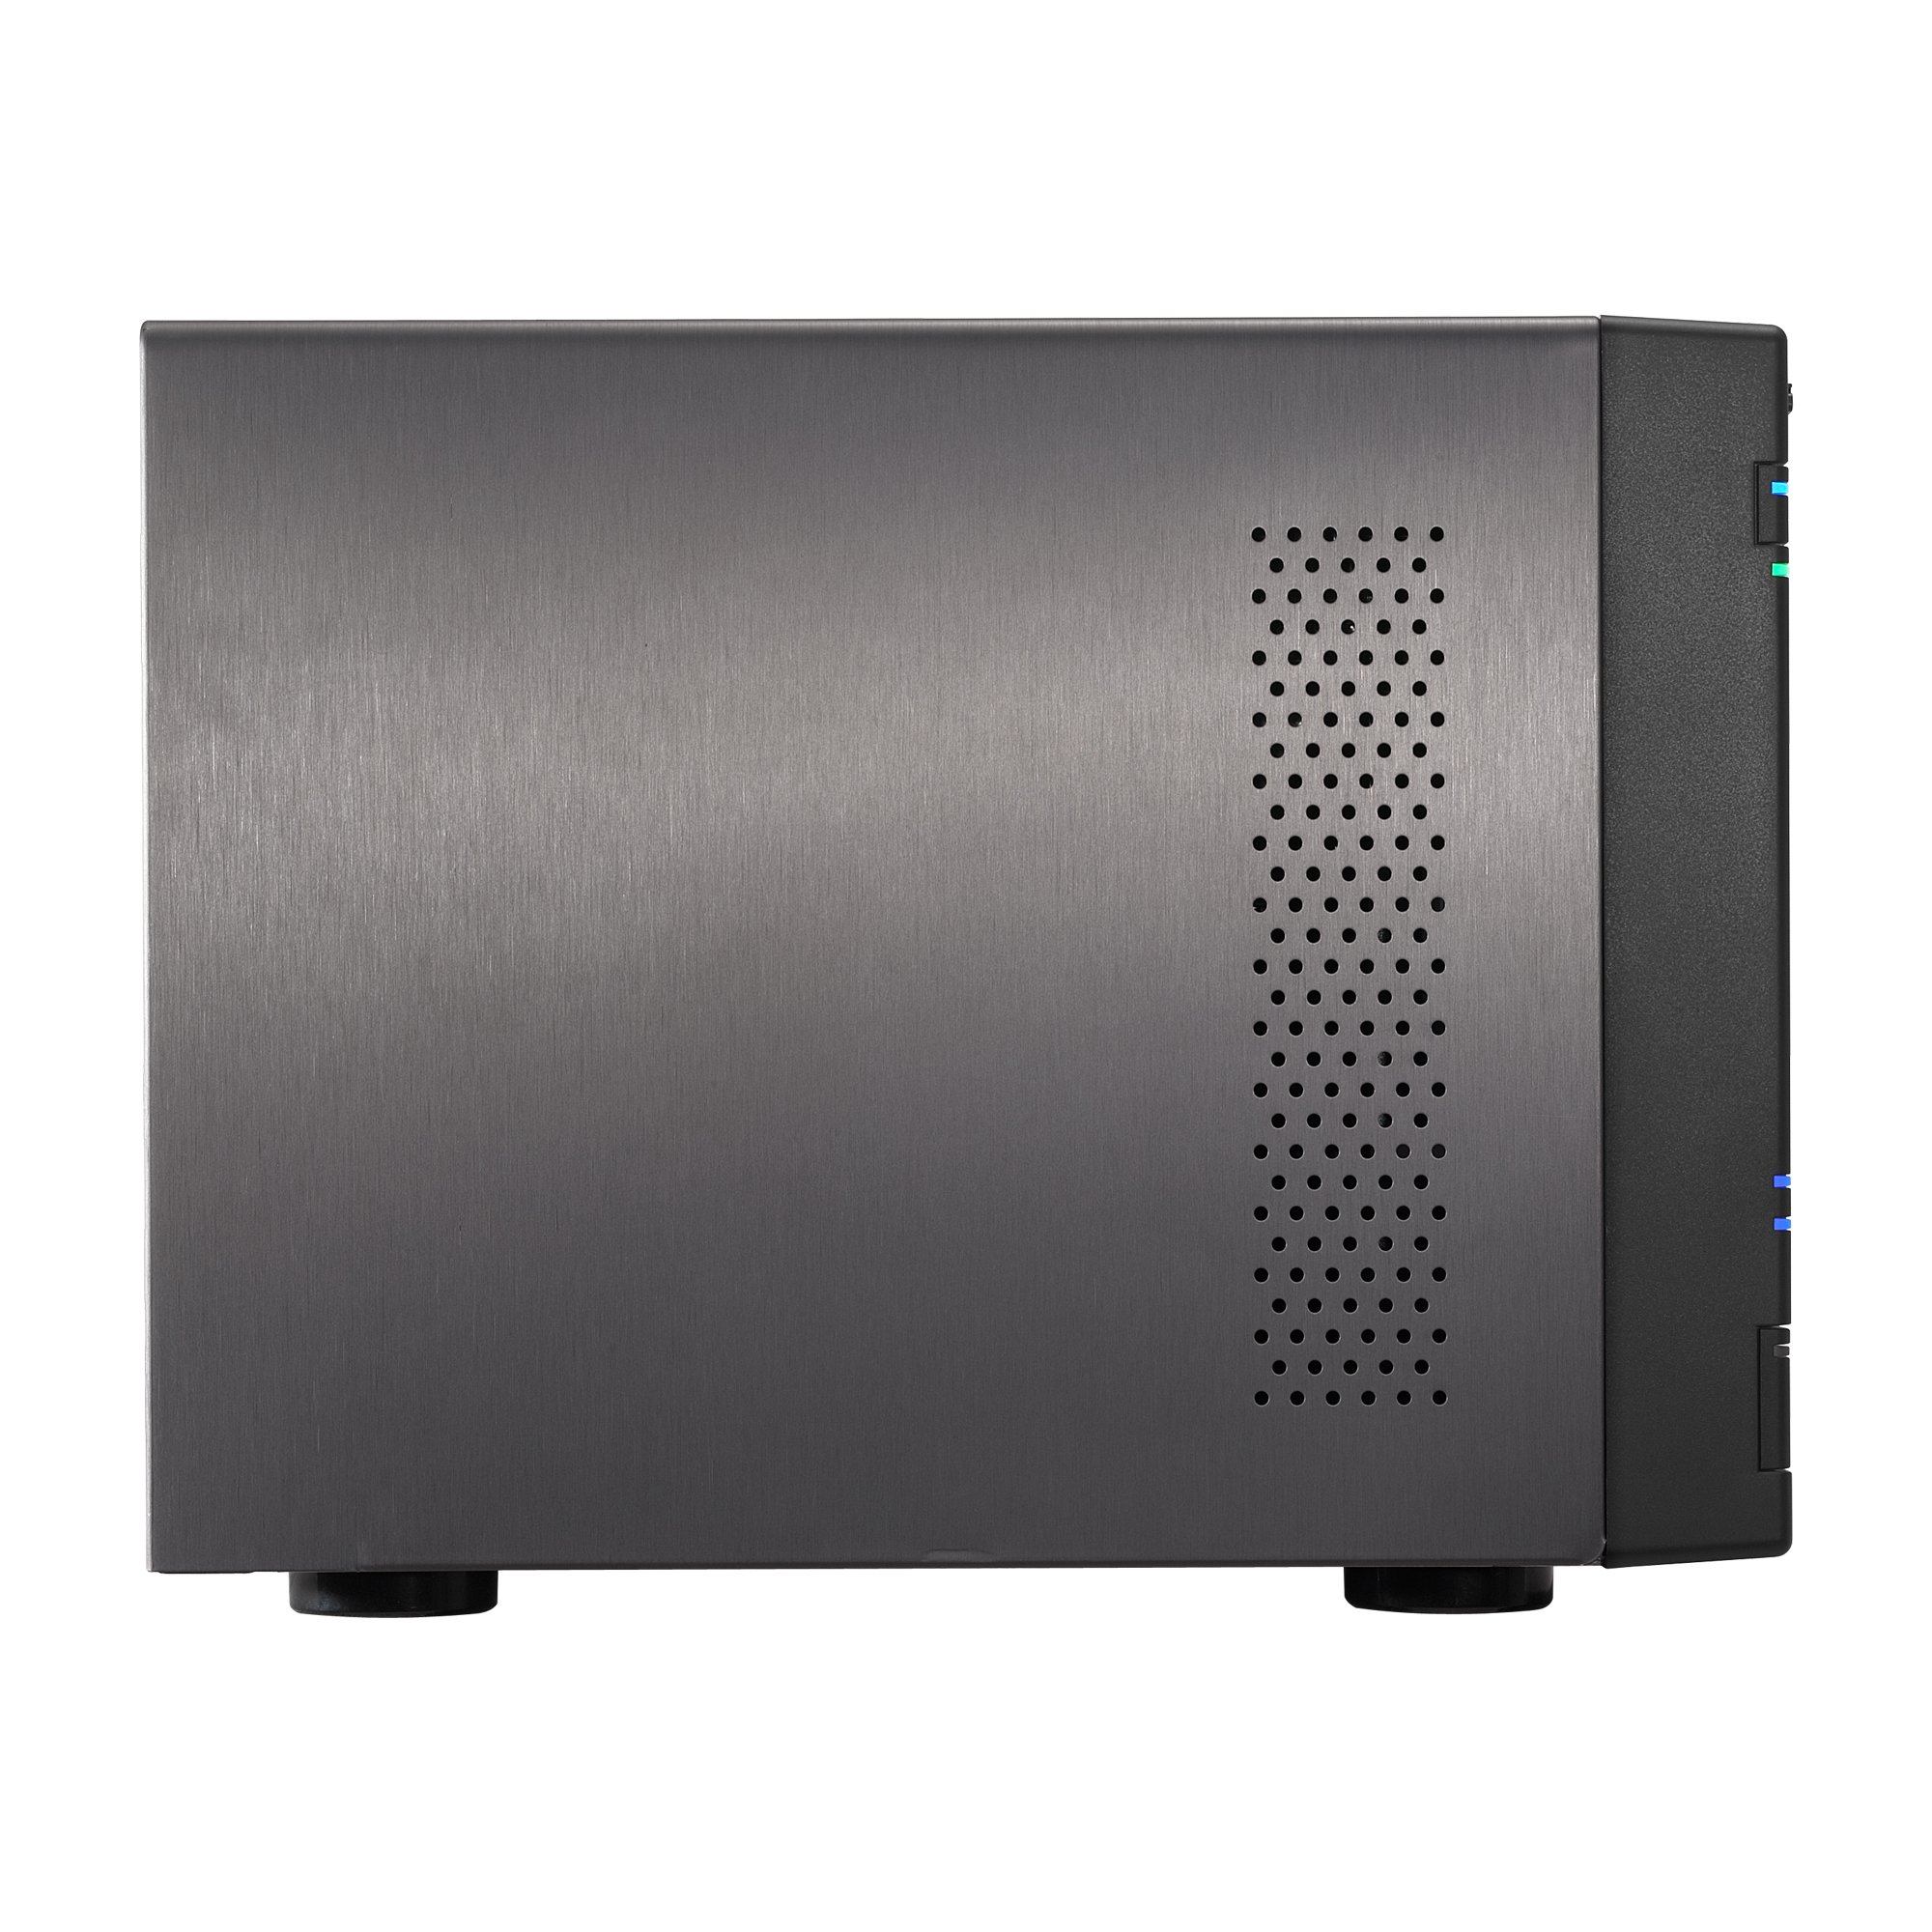 ASUSTOR AS6204T 4-Bay INTEL Quad-Core NAS by Asustor (Image #4)